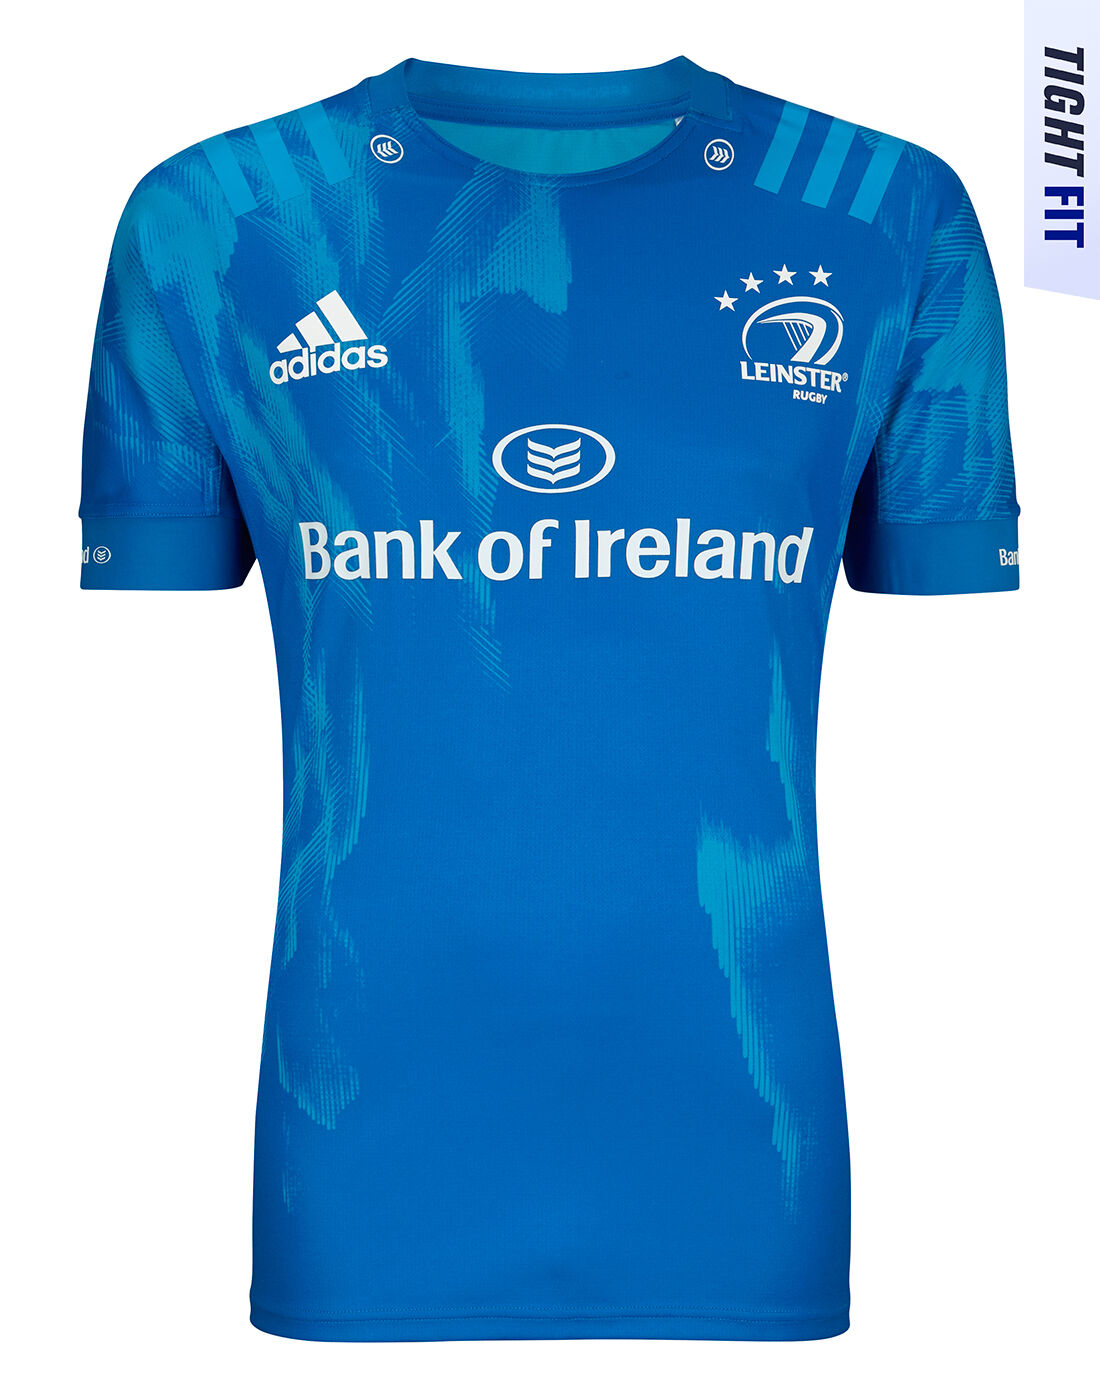 adidas adidas core 18 tracksuit black and women 2017 full | Adult Leinster 20/21 European Players Jersey